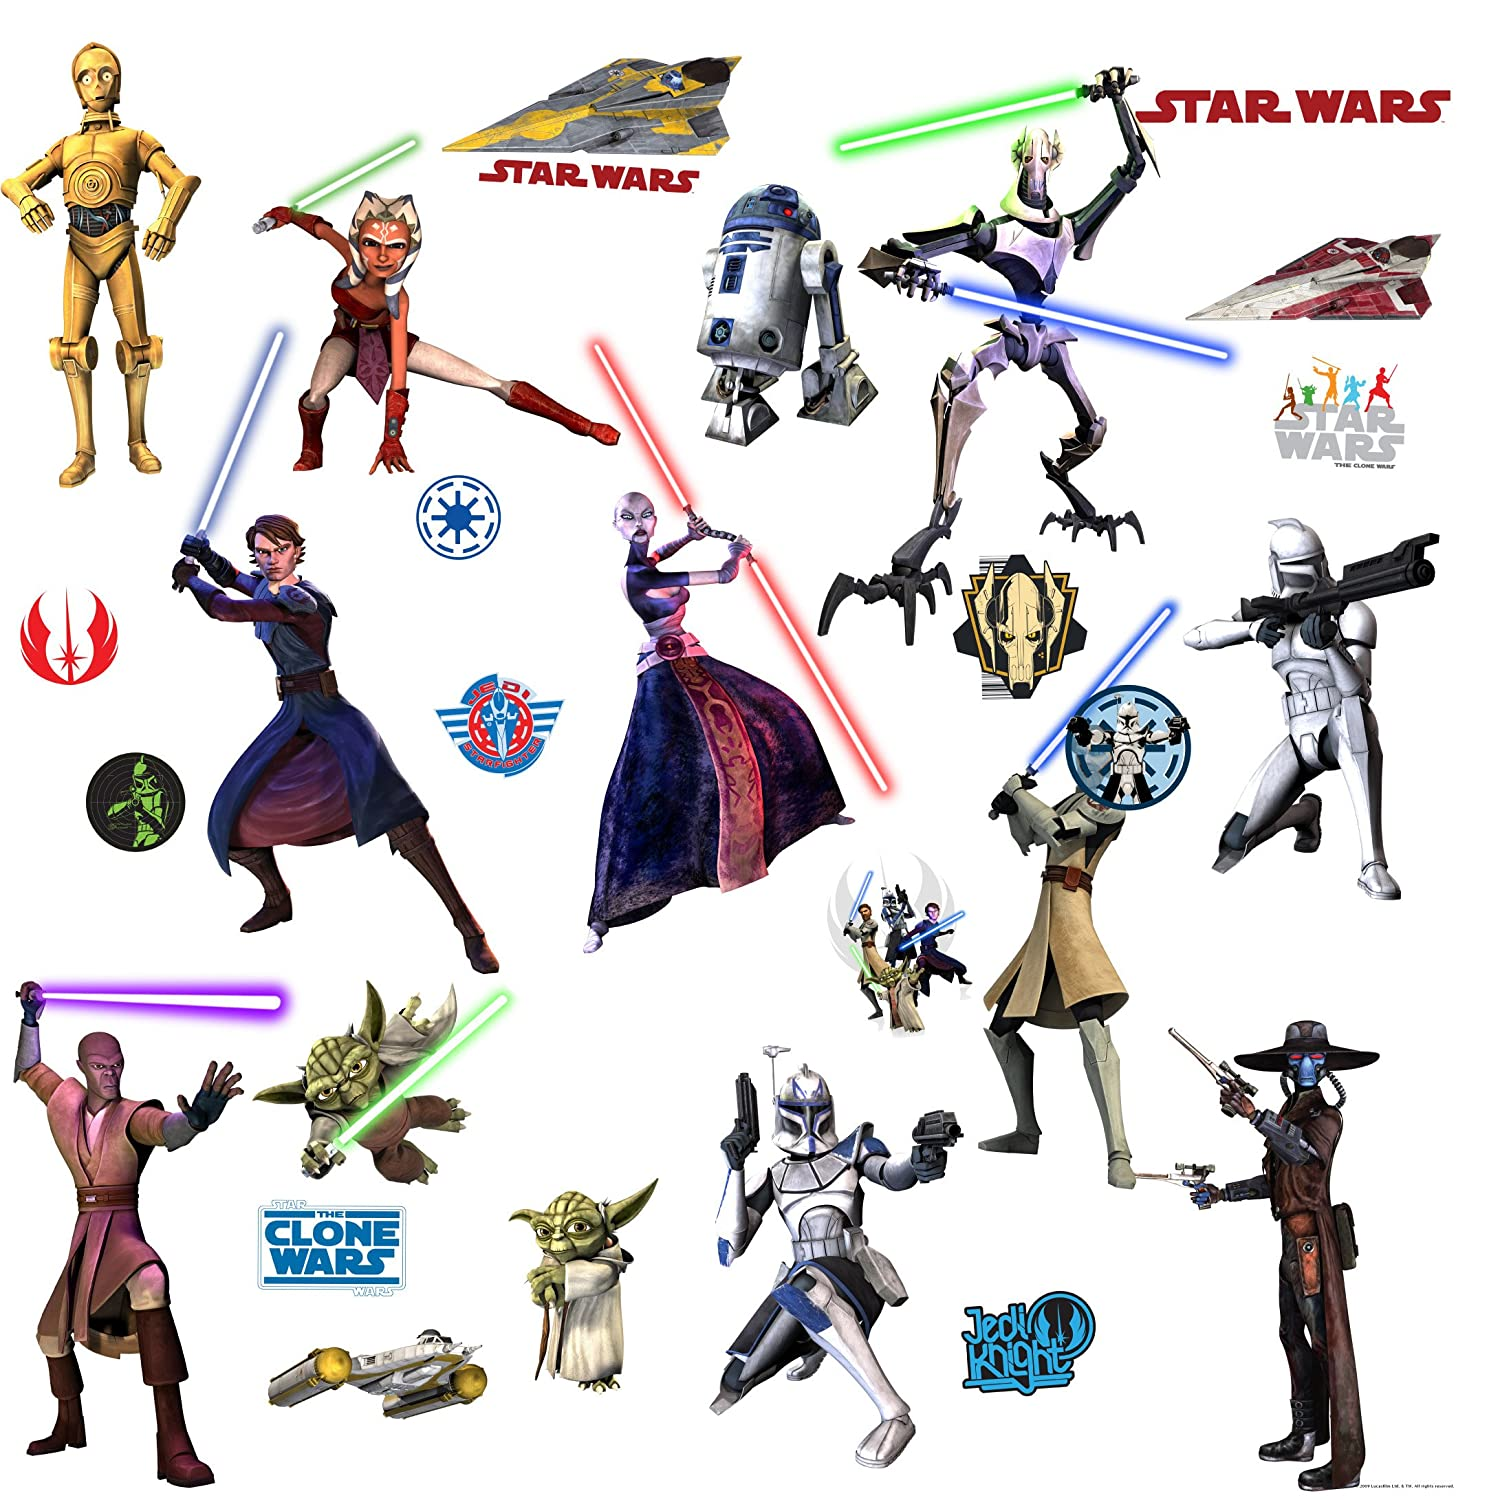 Star Wars Action Figures News, Images, And Reviews ...